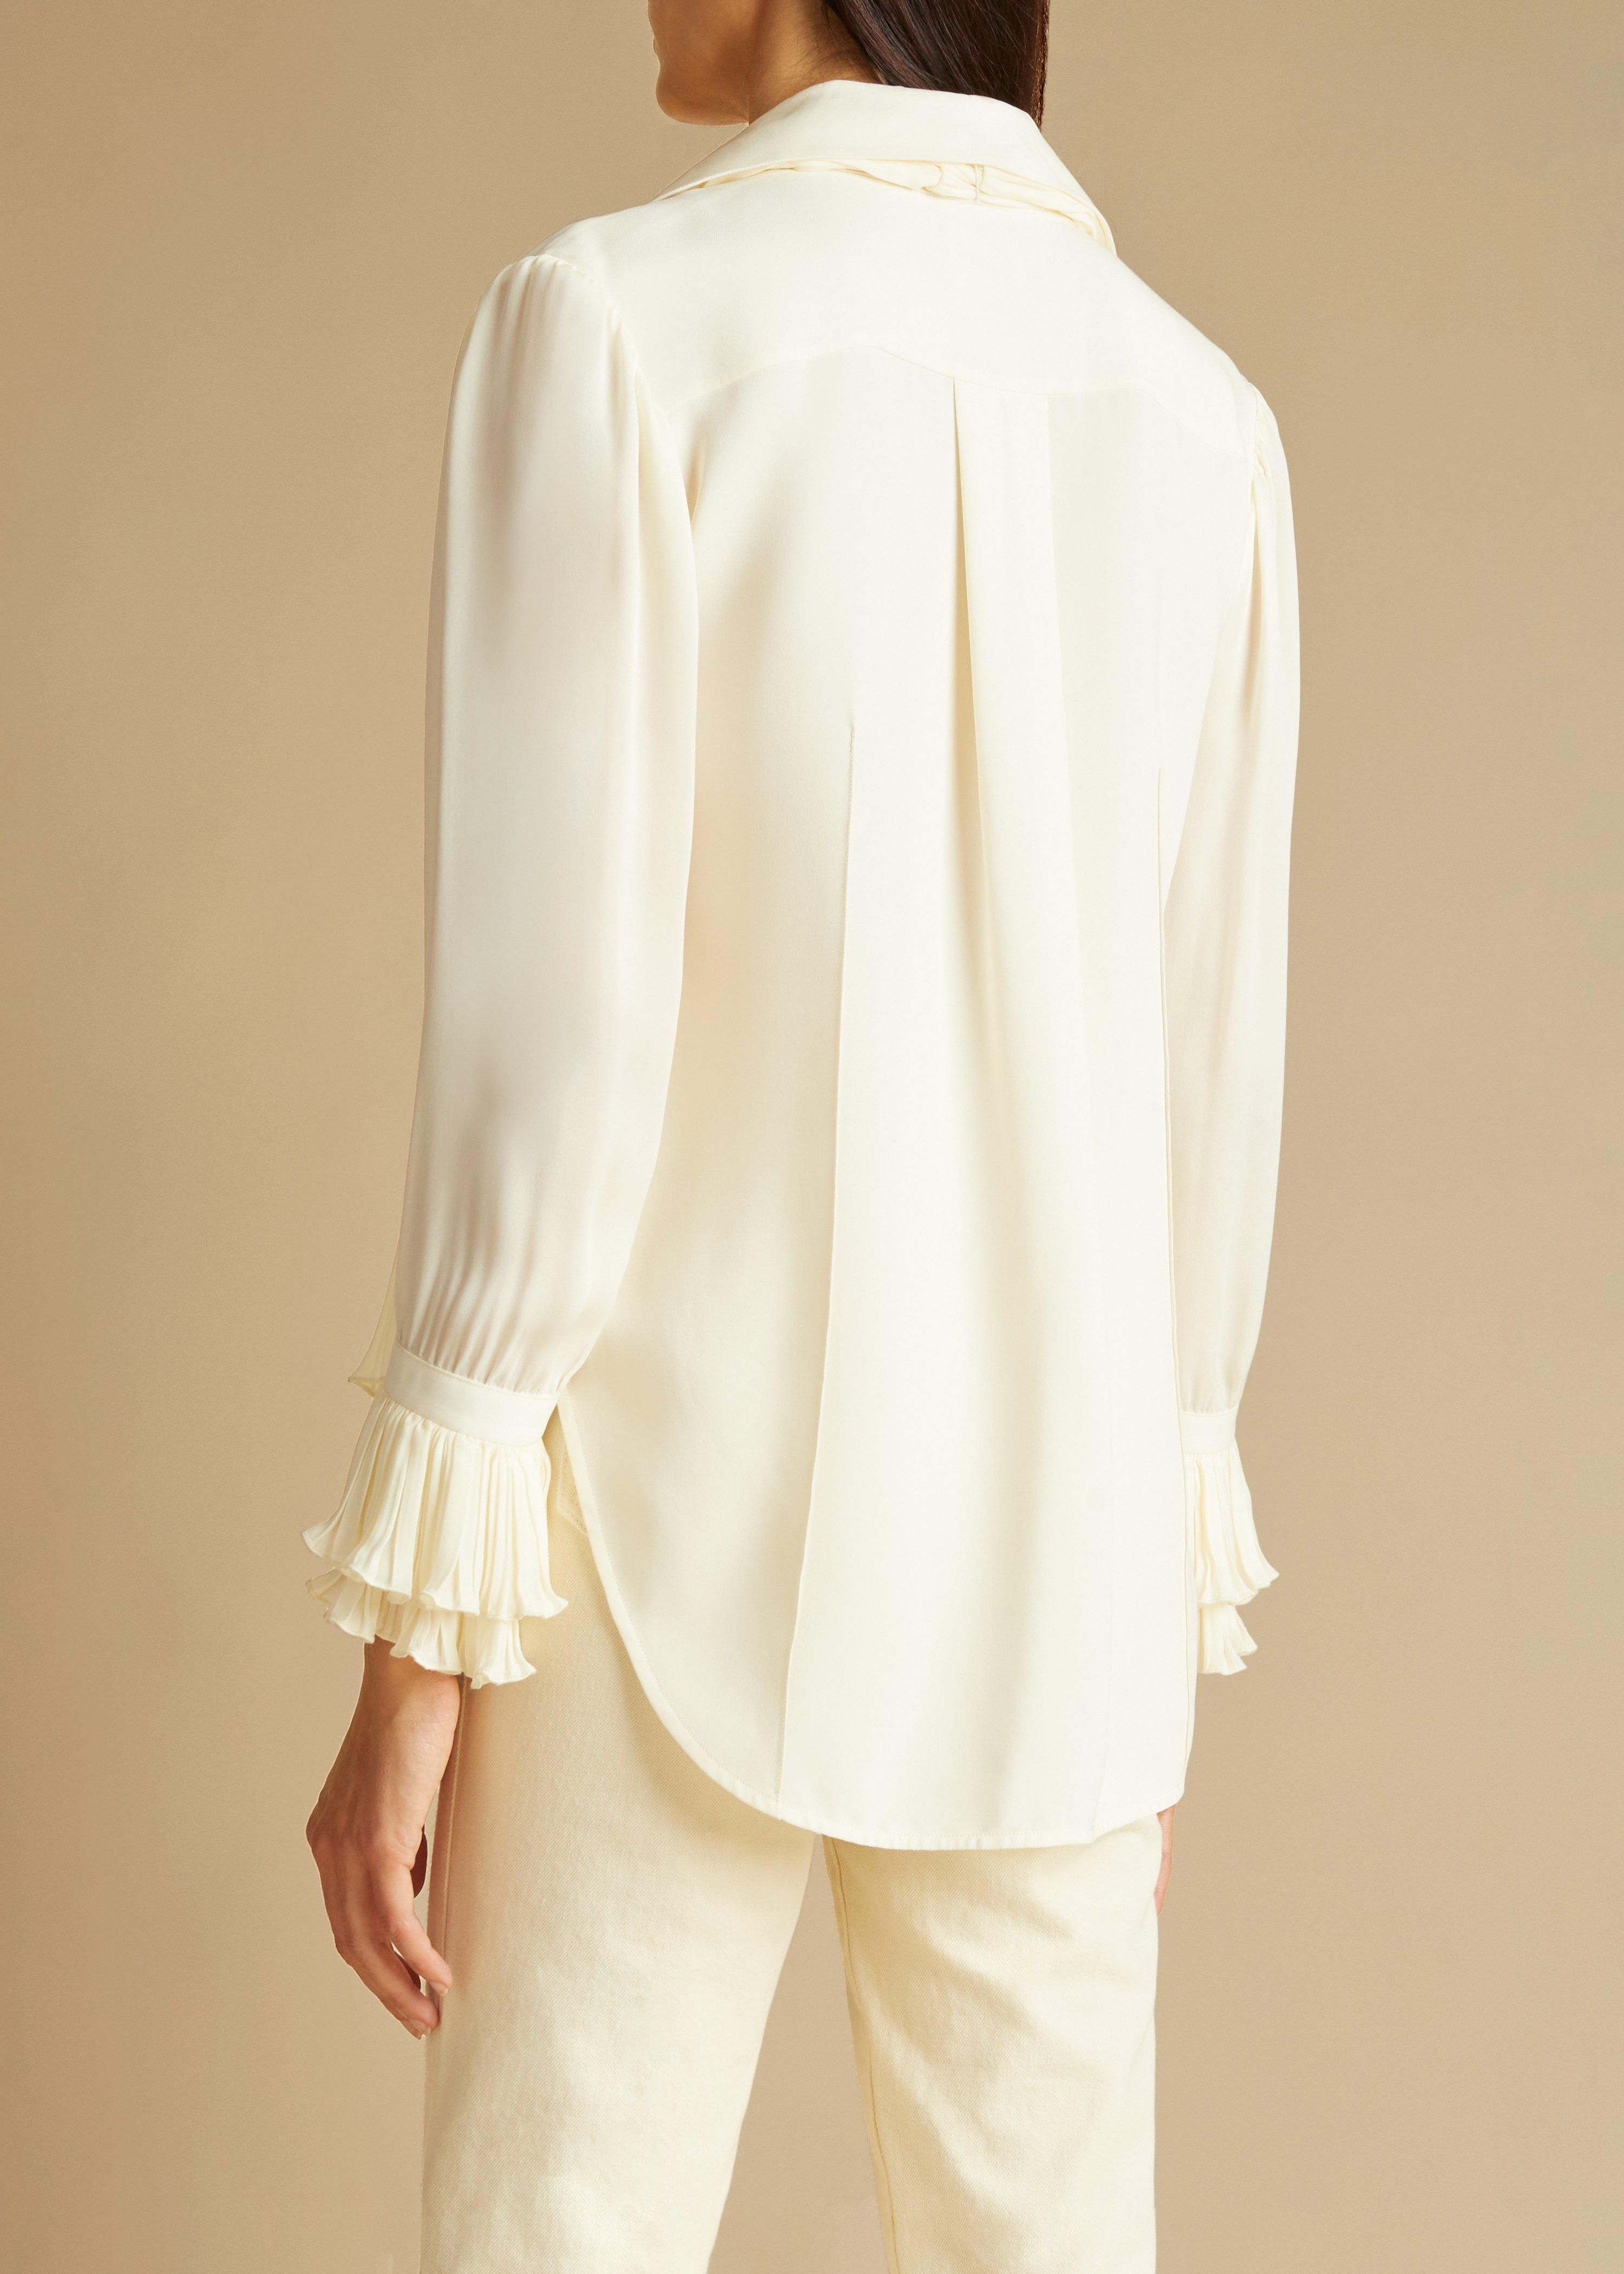 The Nia Top in Ivory 2